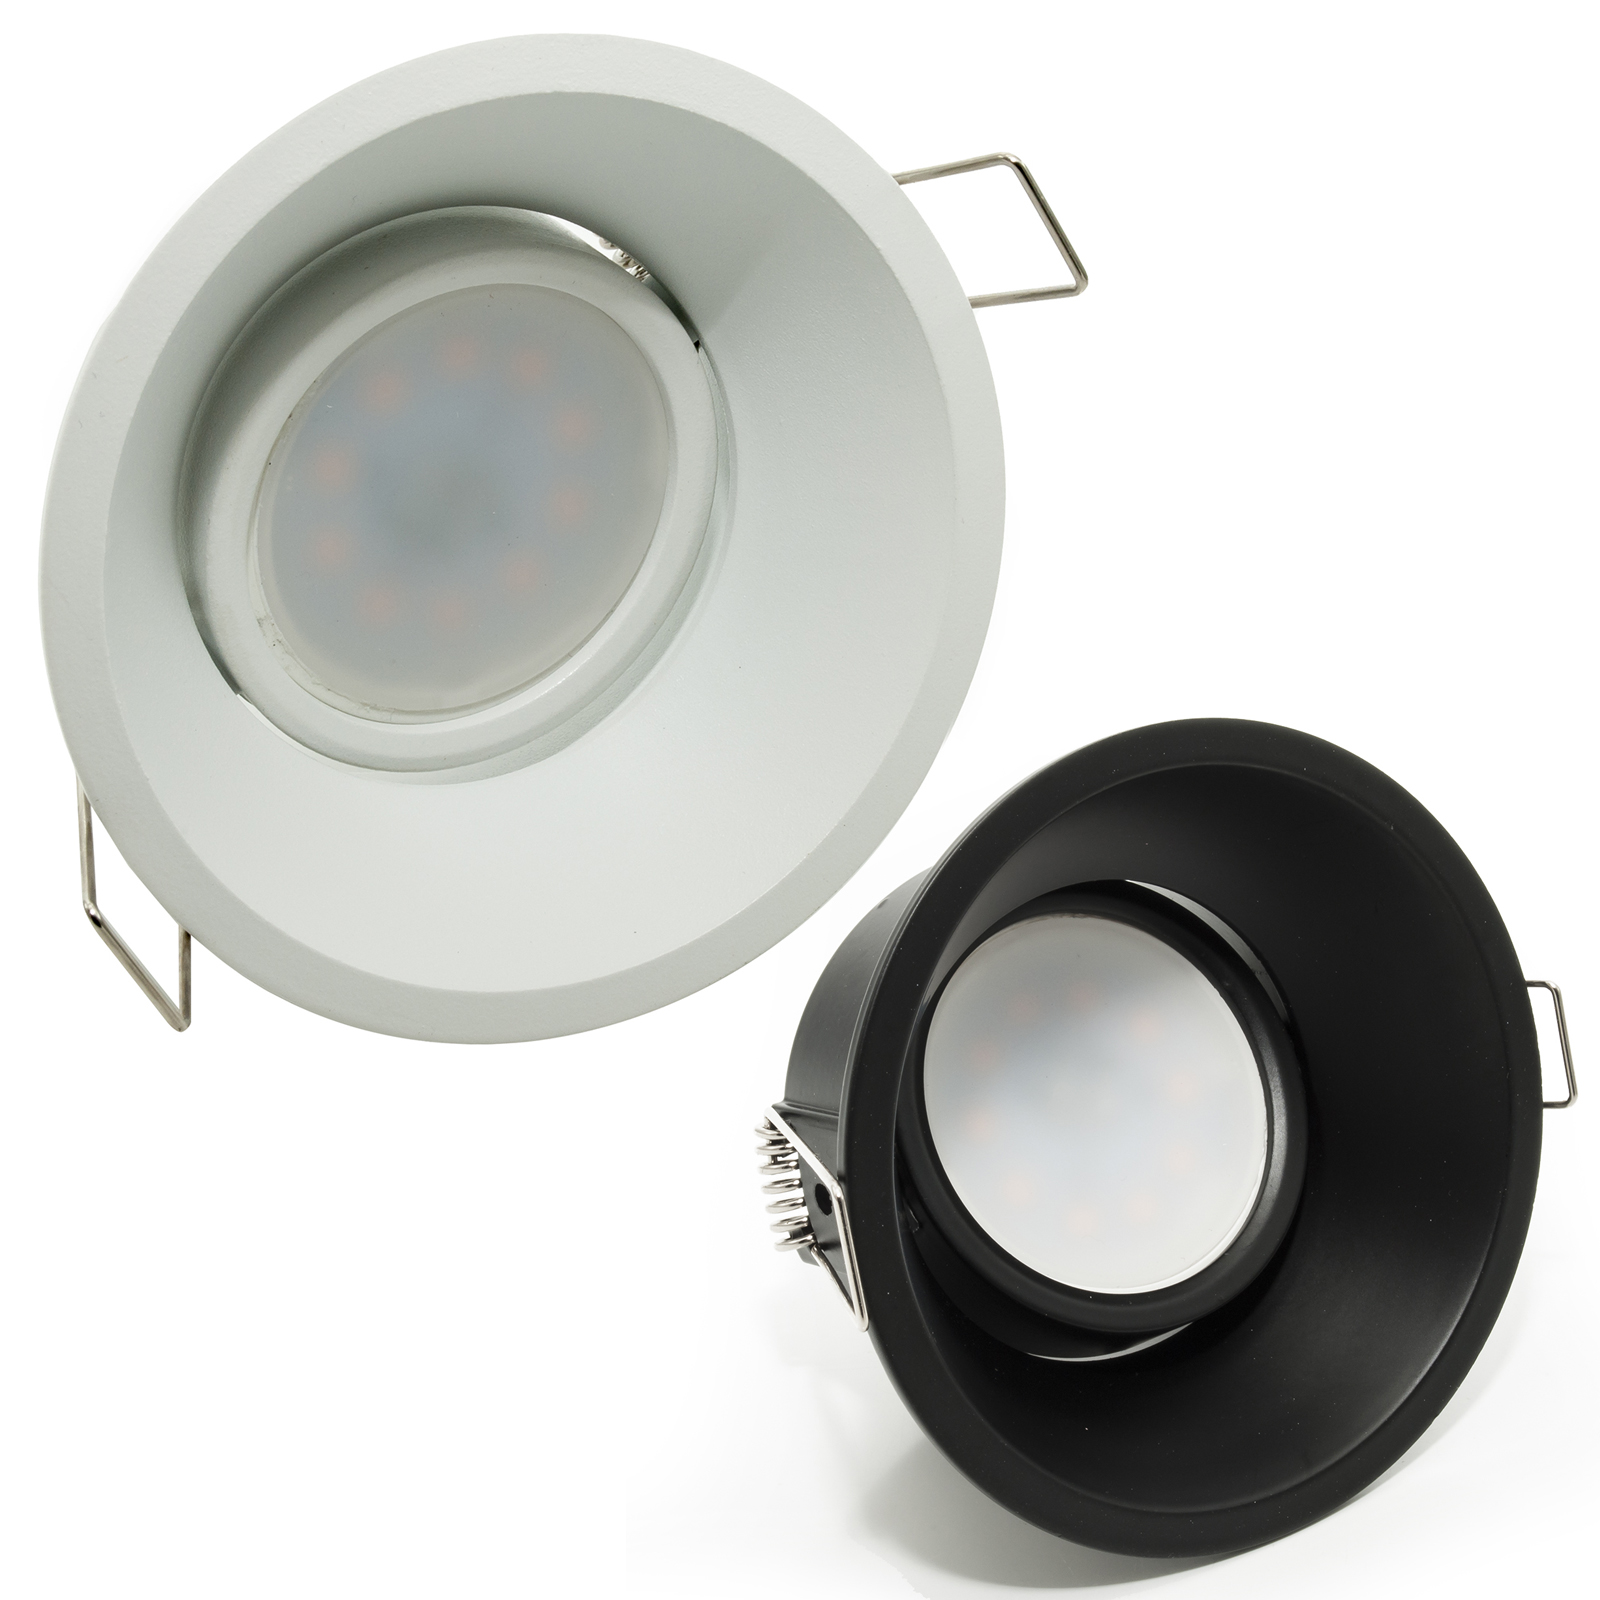 LED spotlight 8W recessed round lamp holder adjustable hole 85mm diffused light